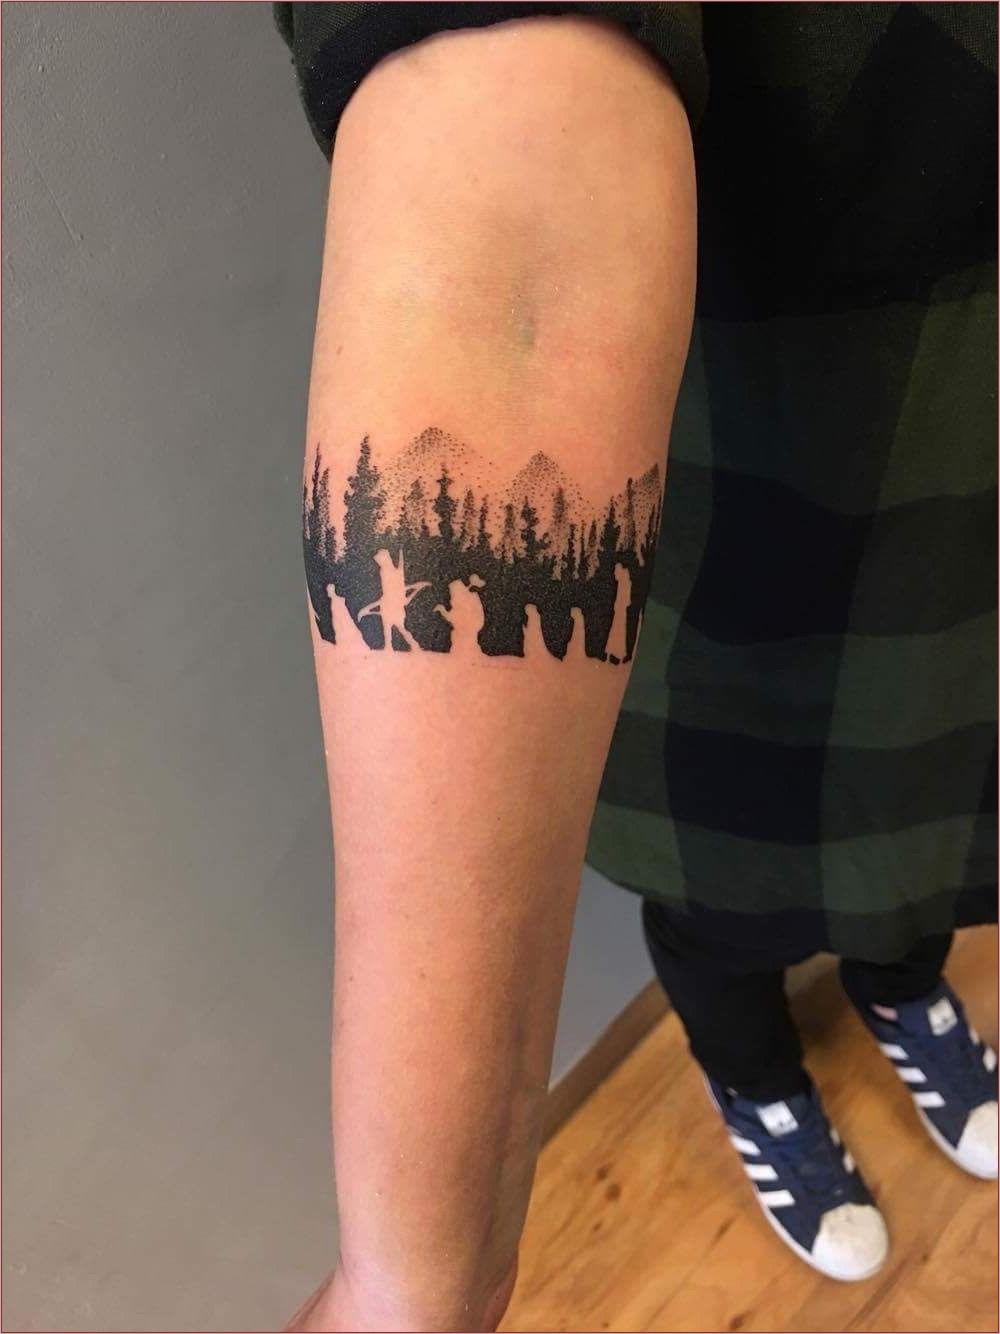 Best Tattoo Designs On Arms Unique Cool Small Tattoos For Guys Arm with regard to proportions 1000 X 1334